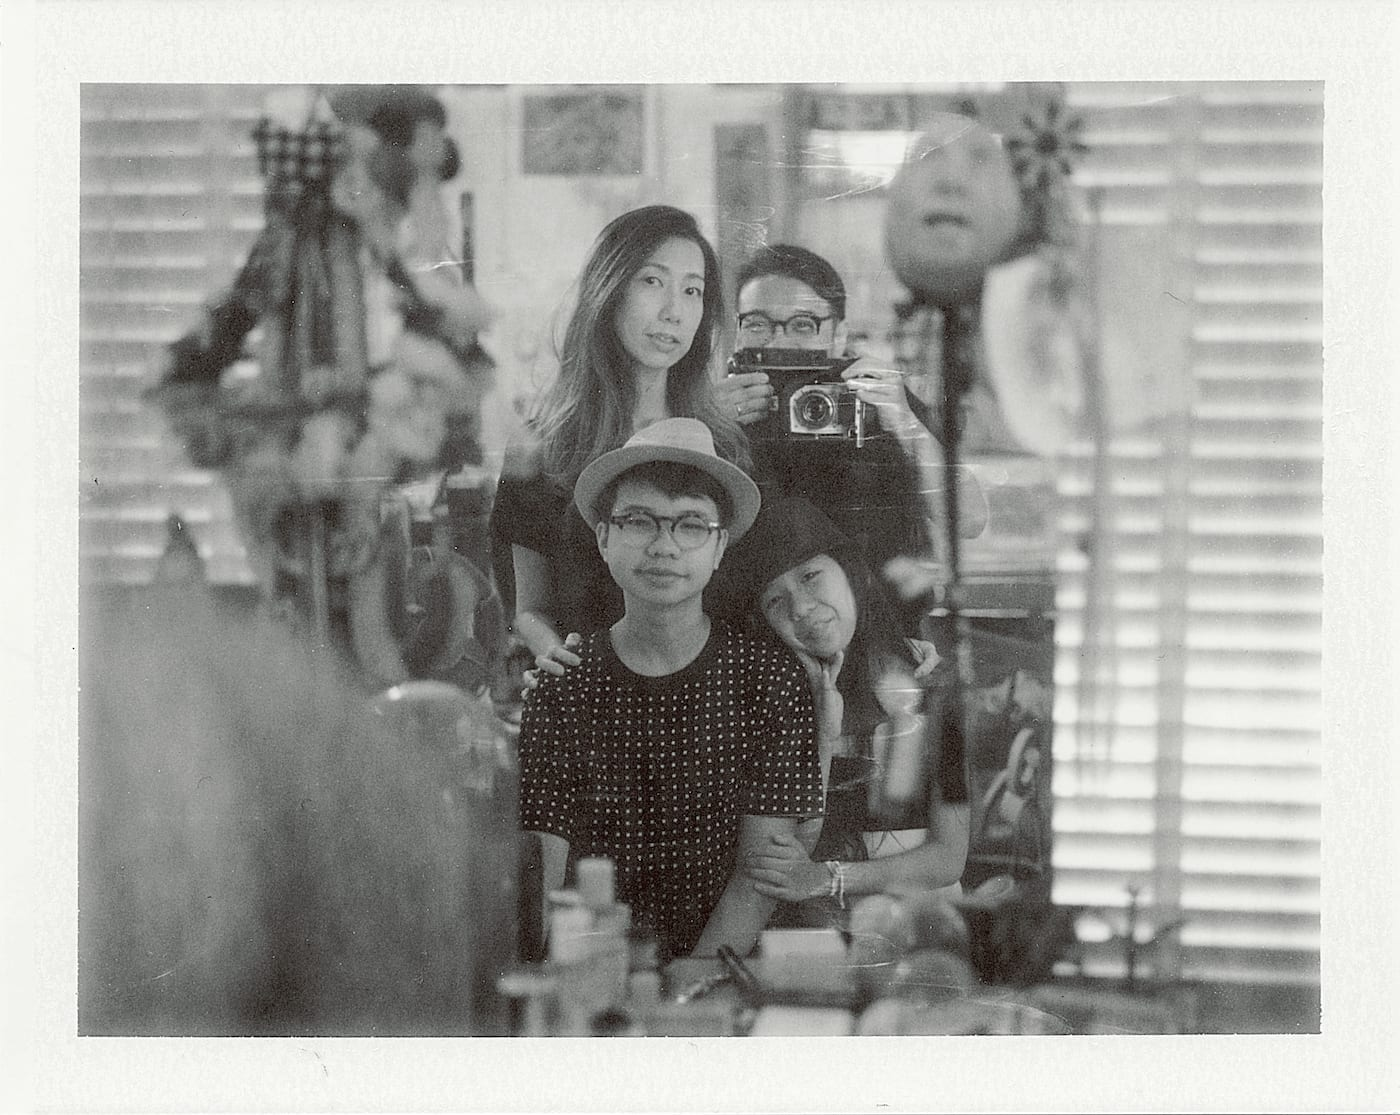 Award-winning creative director Pann and Claire Lim on family, love and creativity